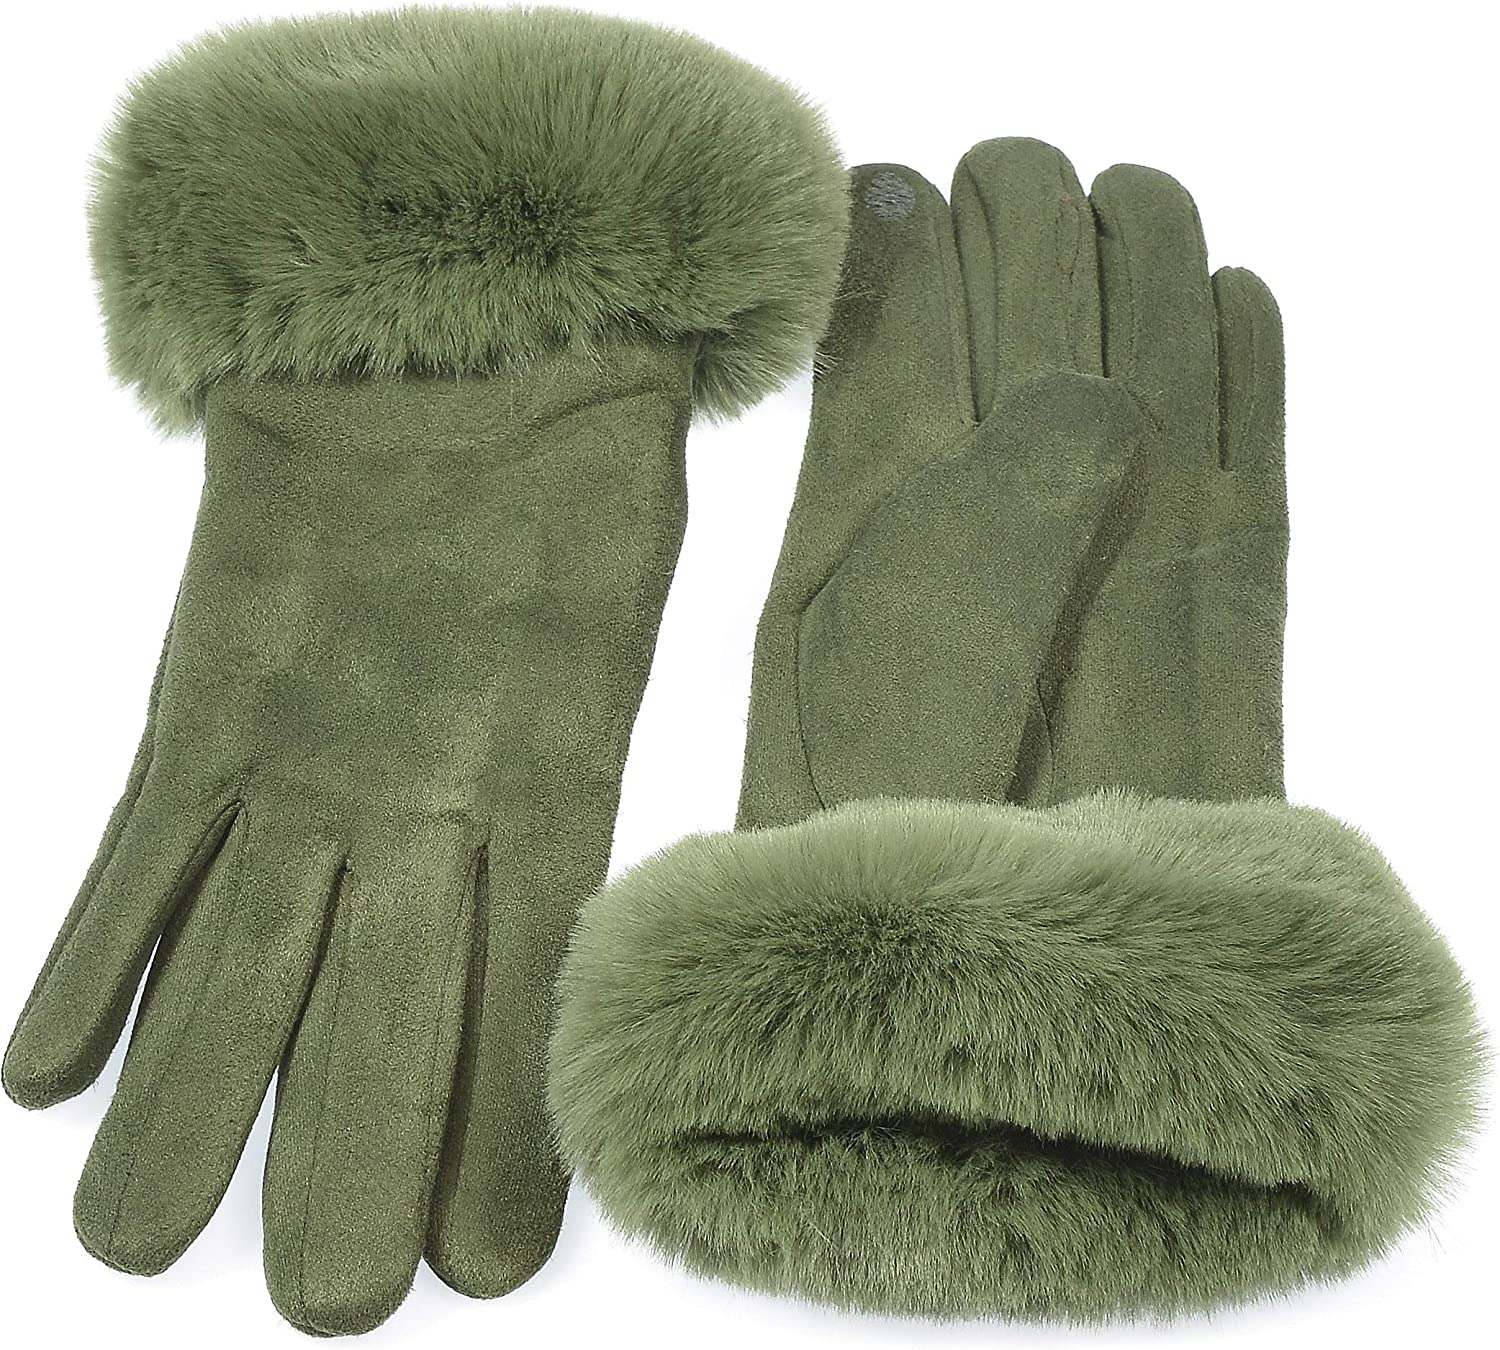 Hand By Hand Faux Suede I Touch Gloves Faux Fur Cuff and Lined Warmth